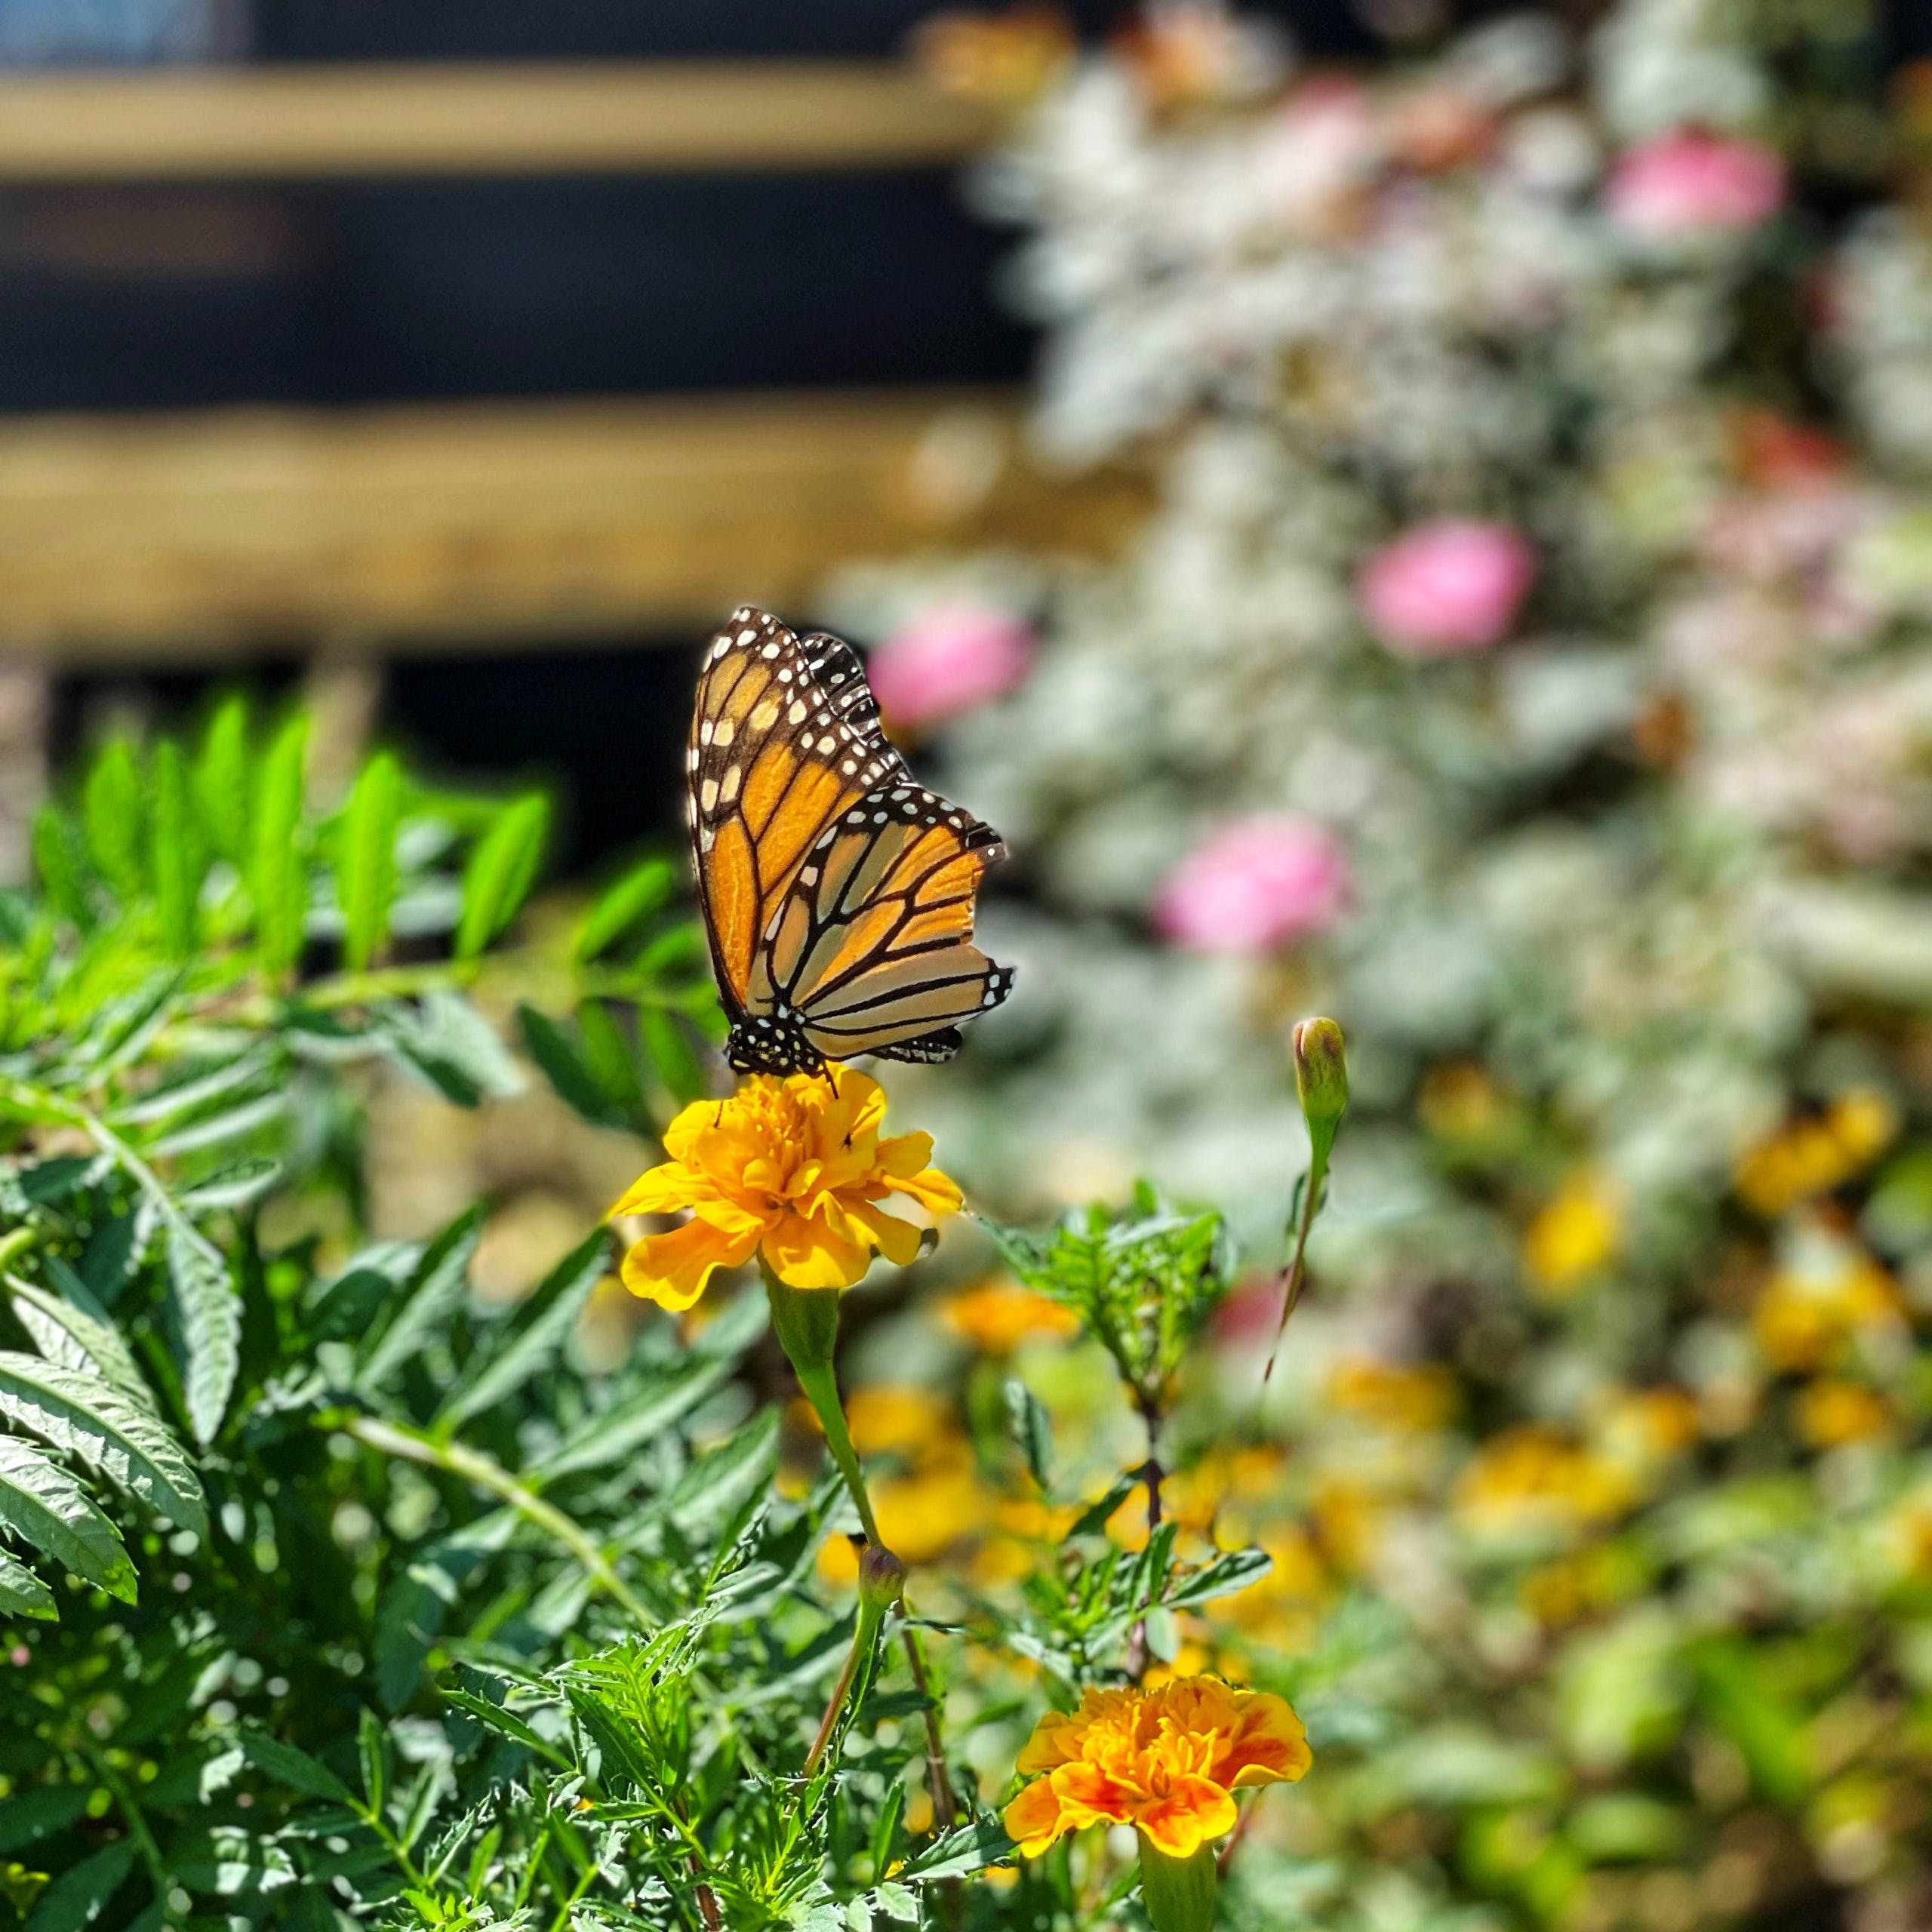 A butterfly sitting on a marigold